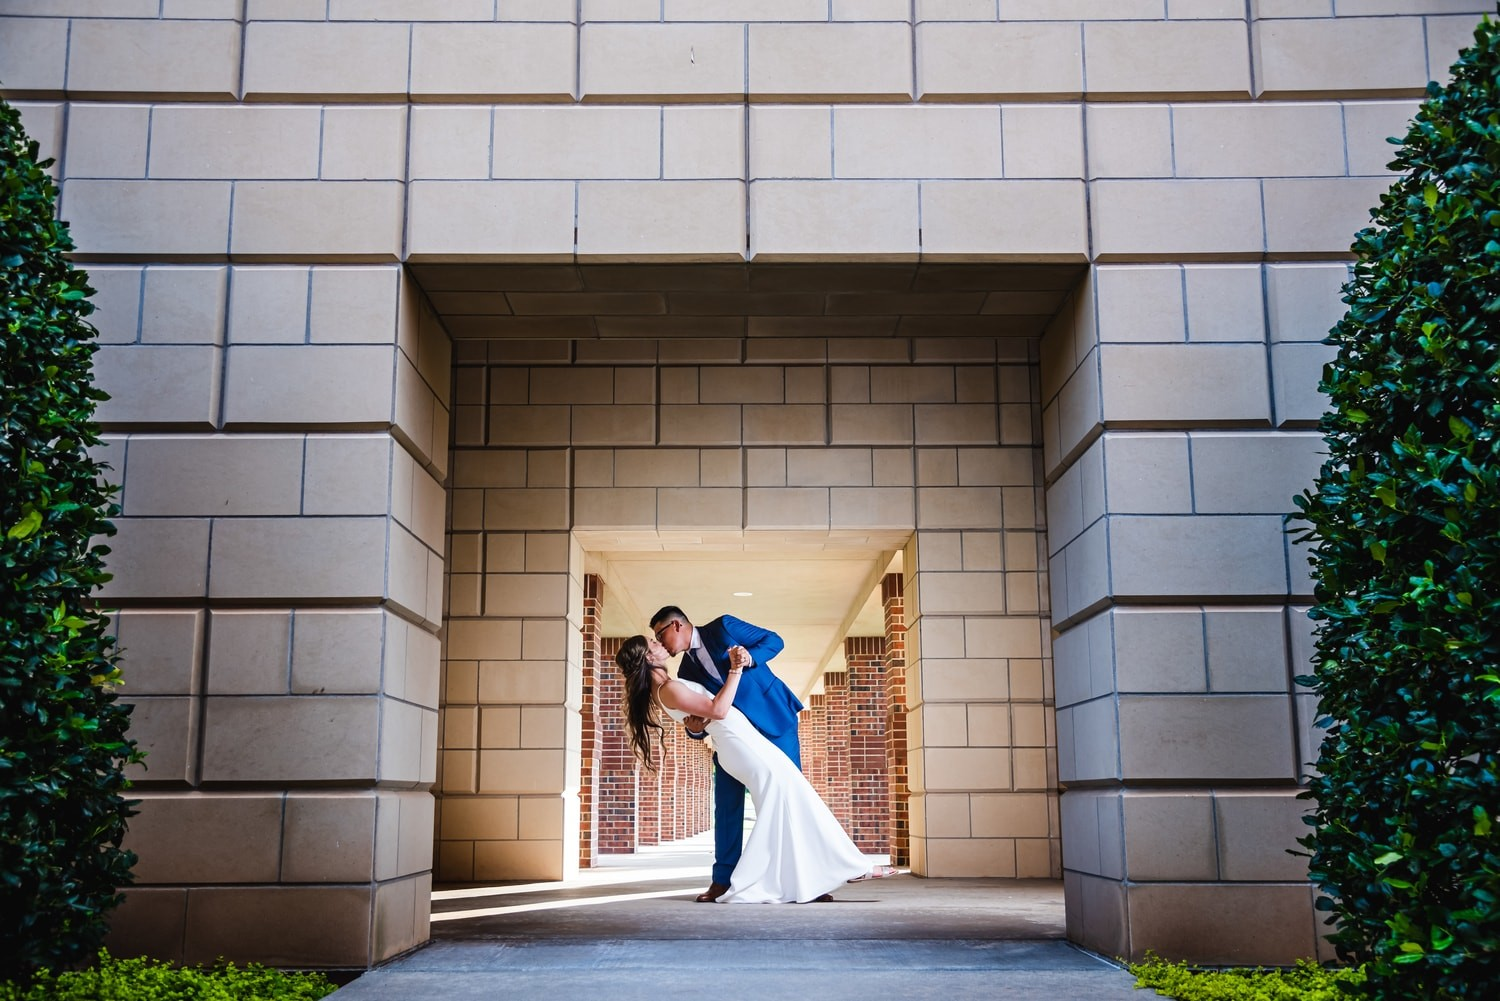 10 Questions with Chad & Brie Photography